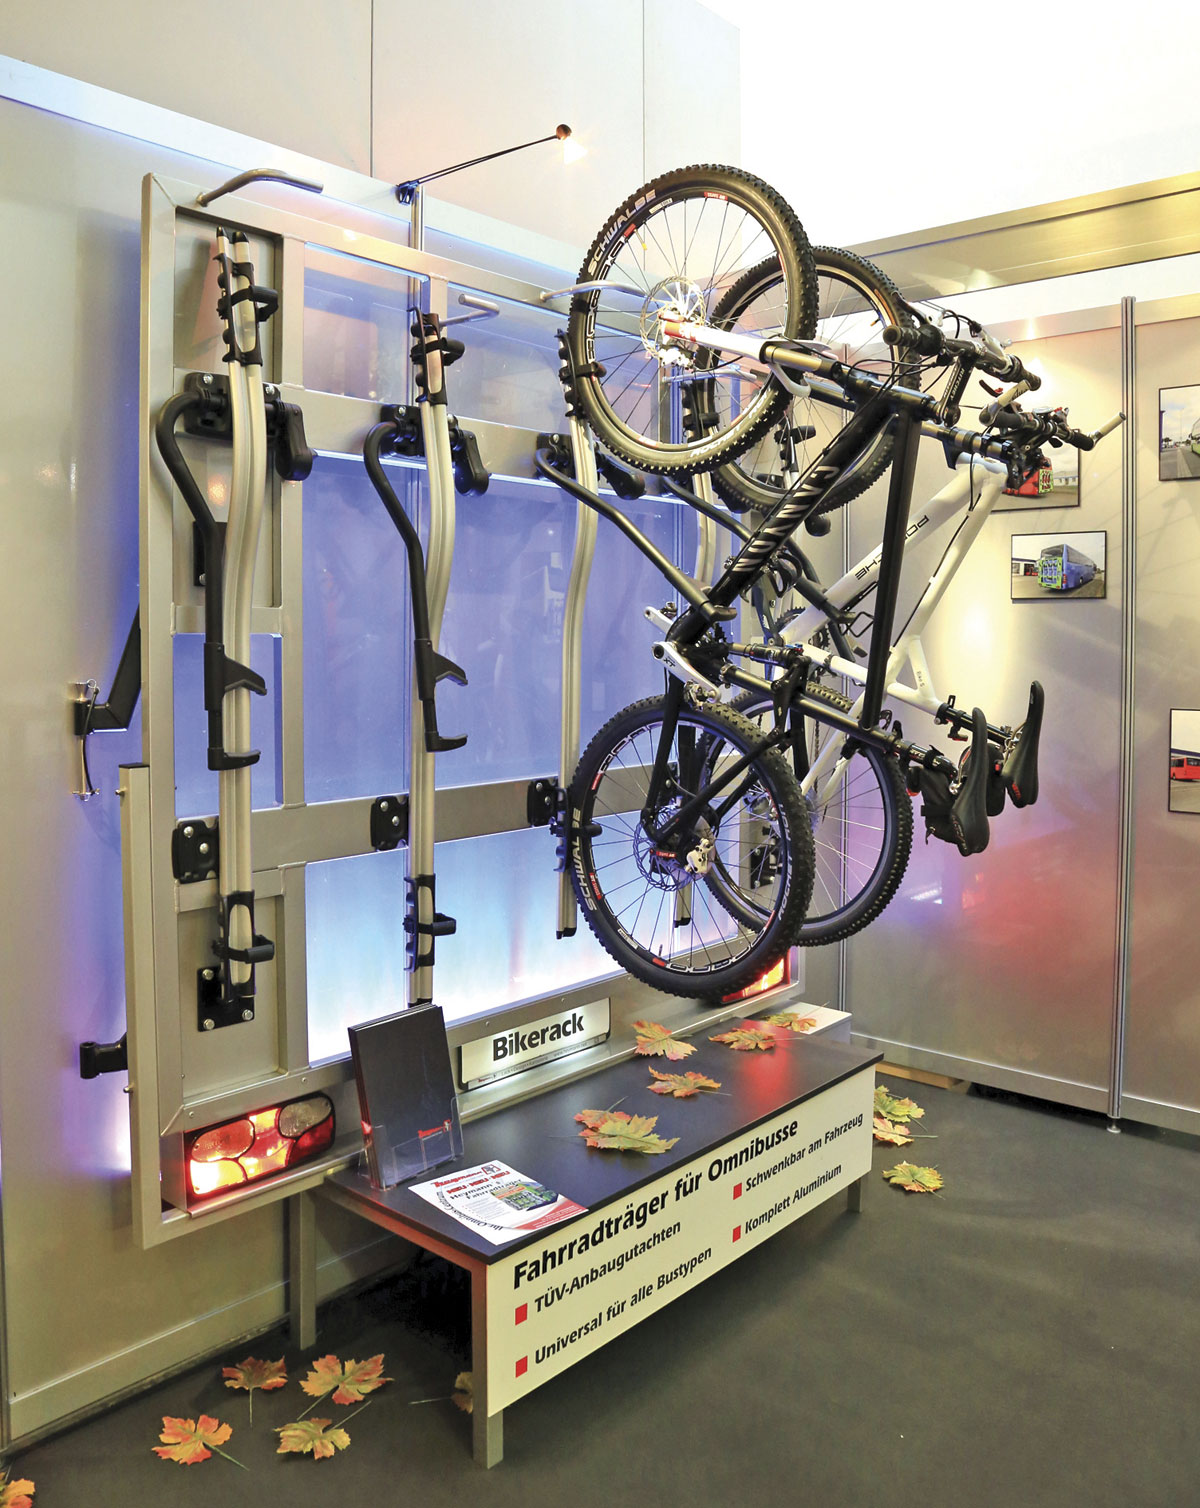 Cycle carrier from Heymann.